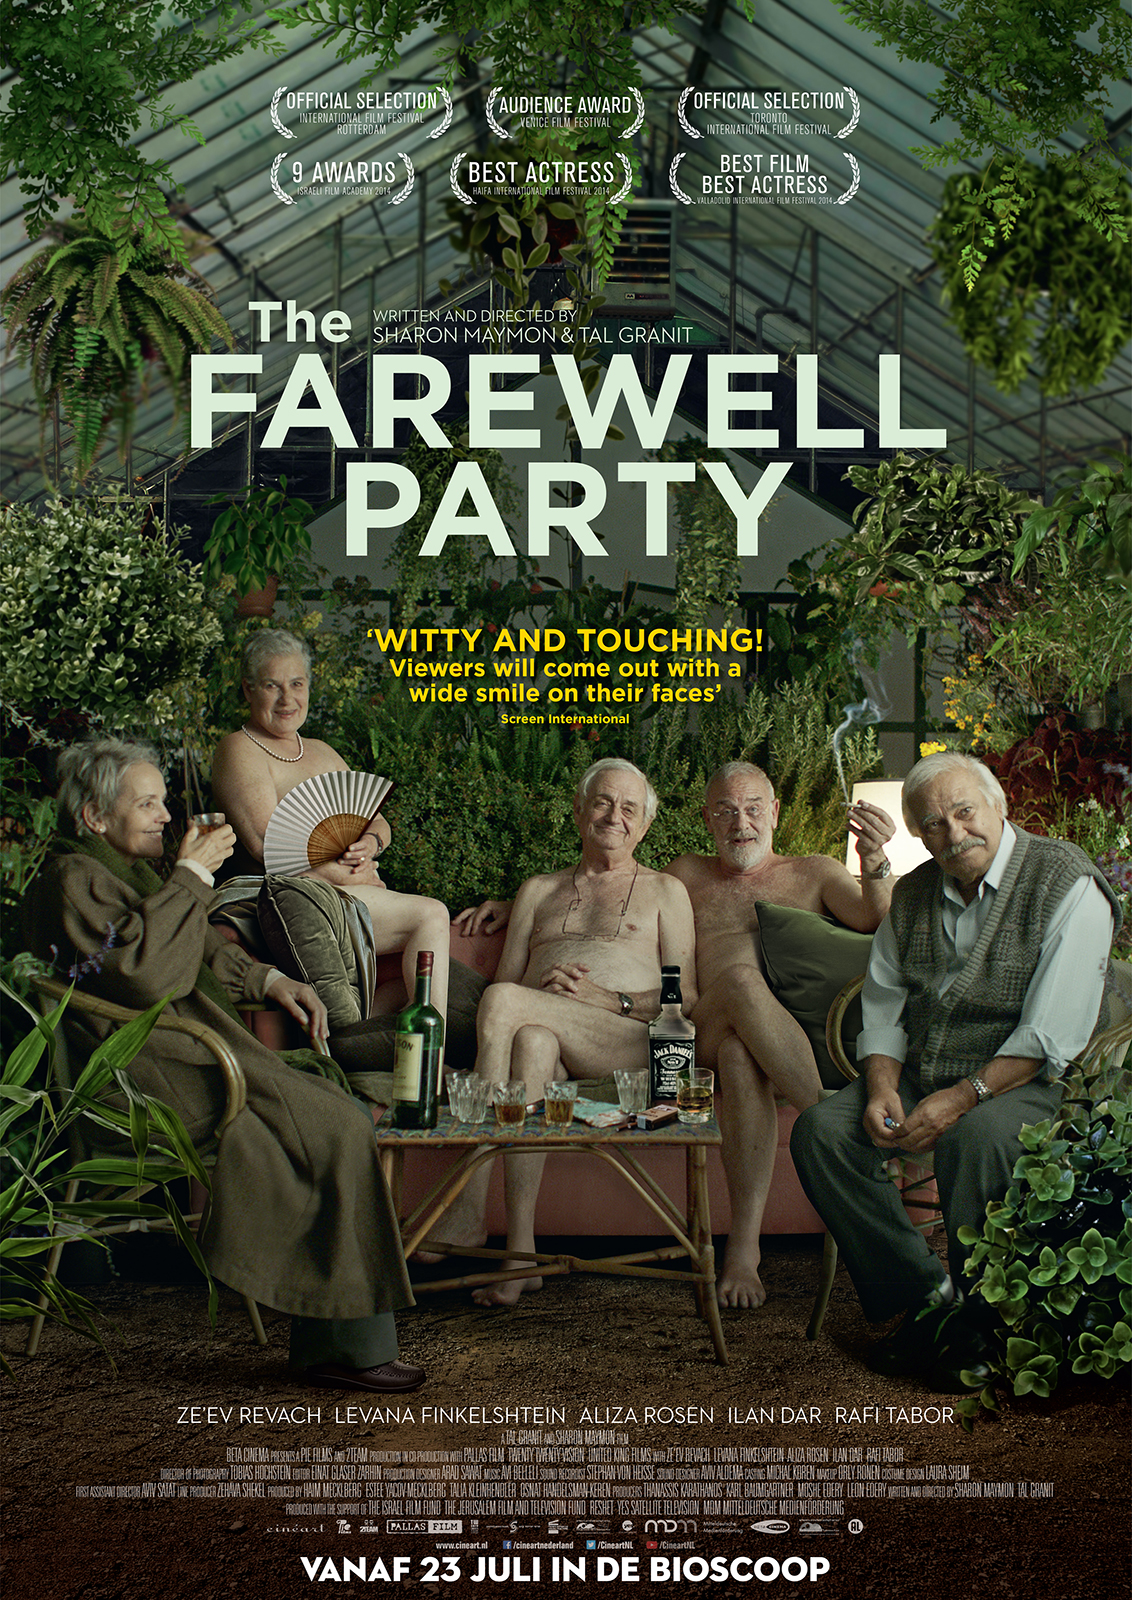 Film: The Farewell Party